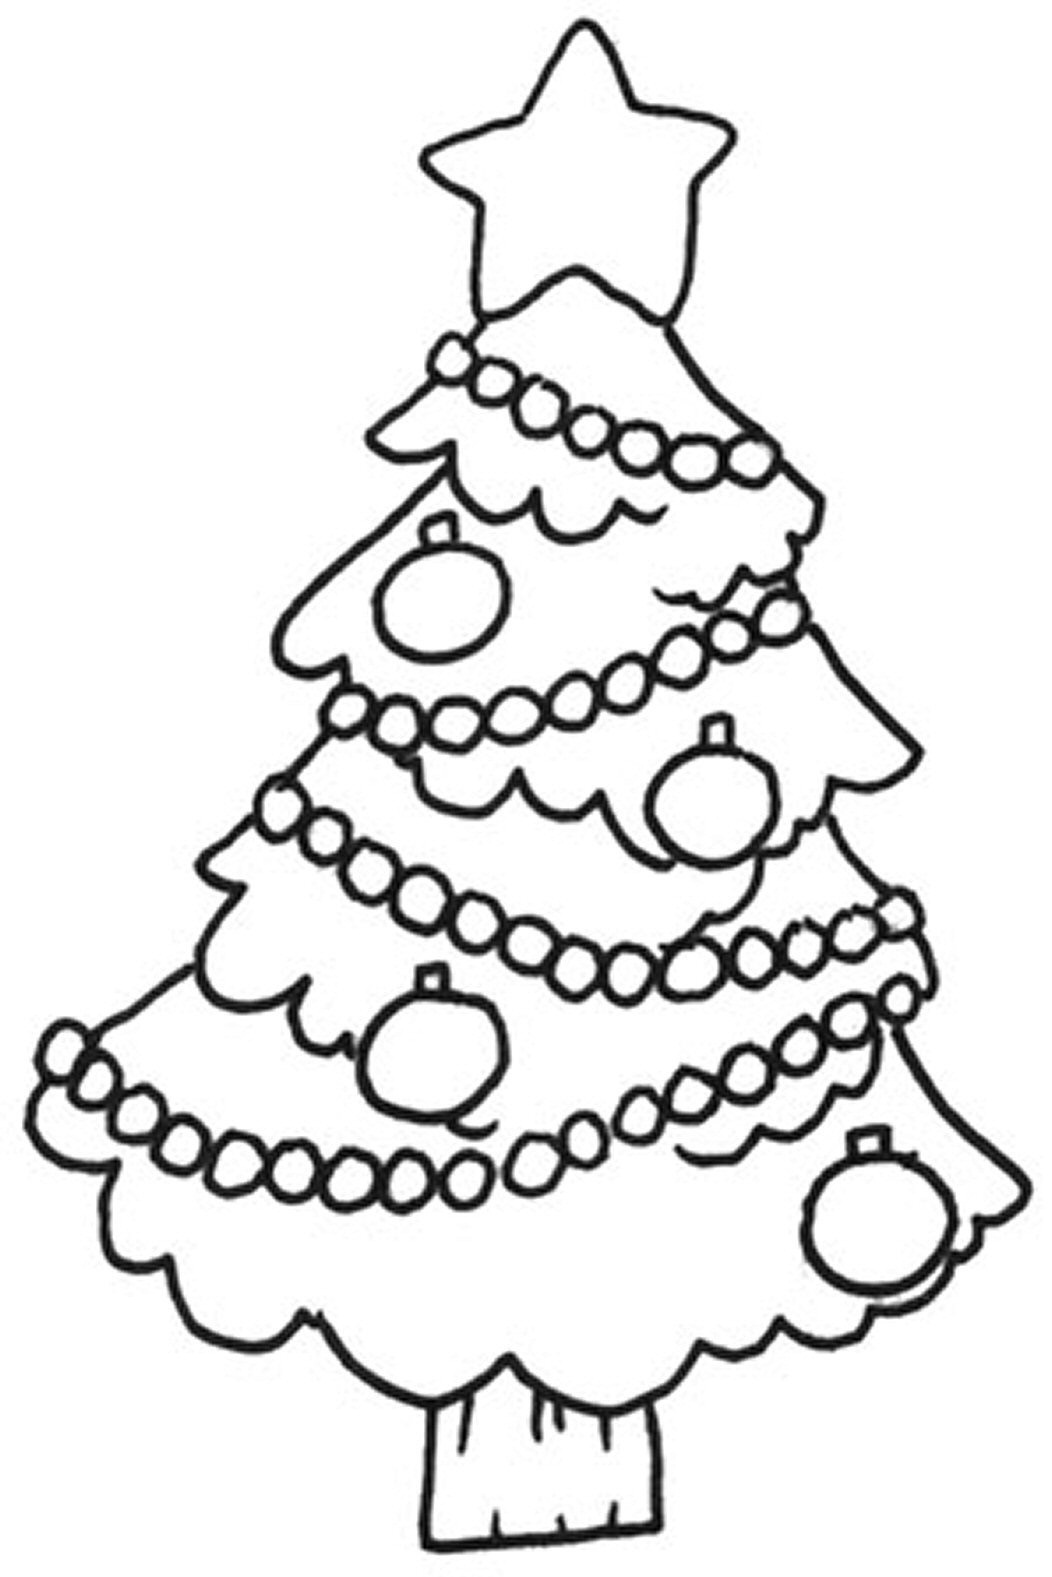 Christmas Coloring Pages For Toddlers Free : Free printable christmas tree coloring pages for kids